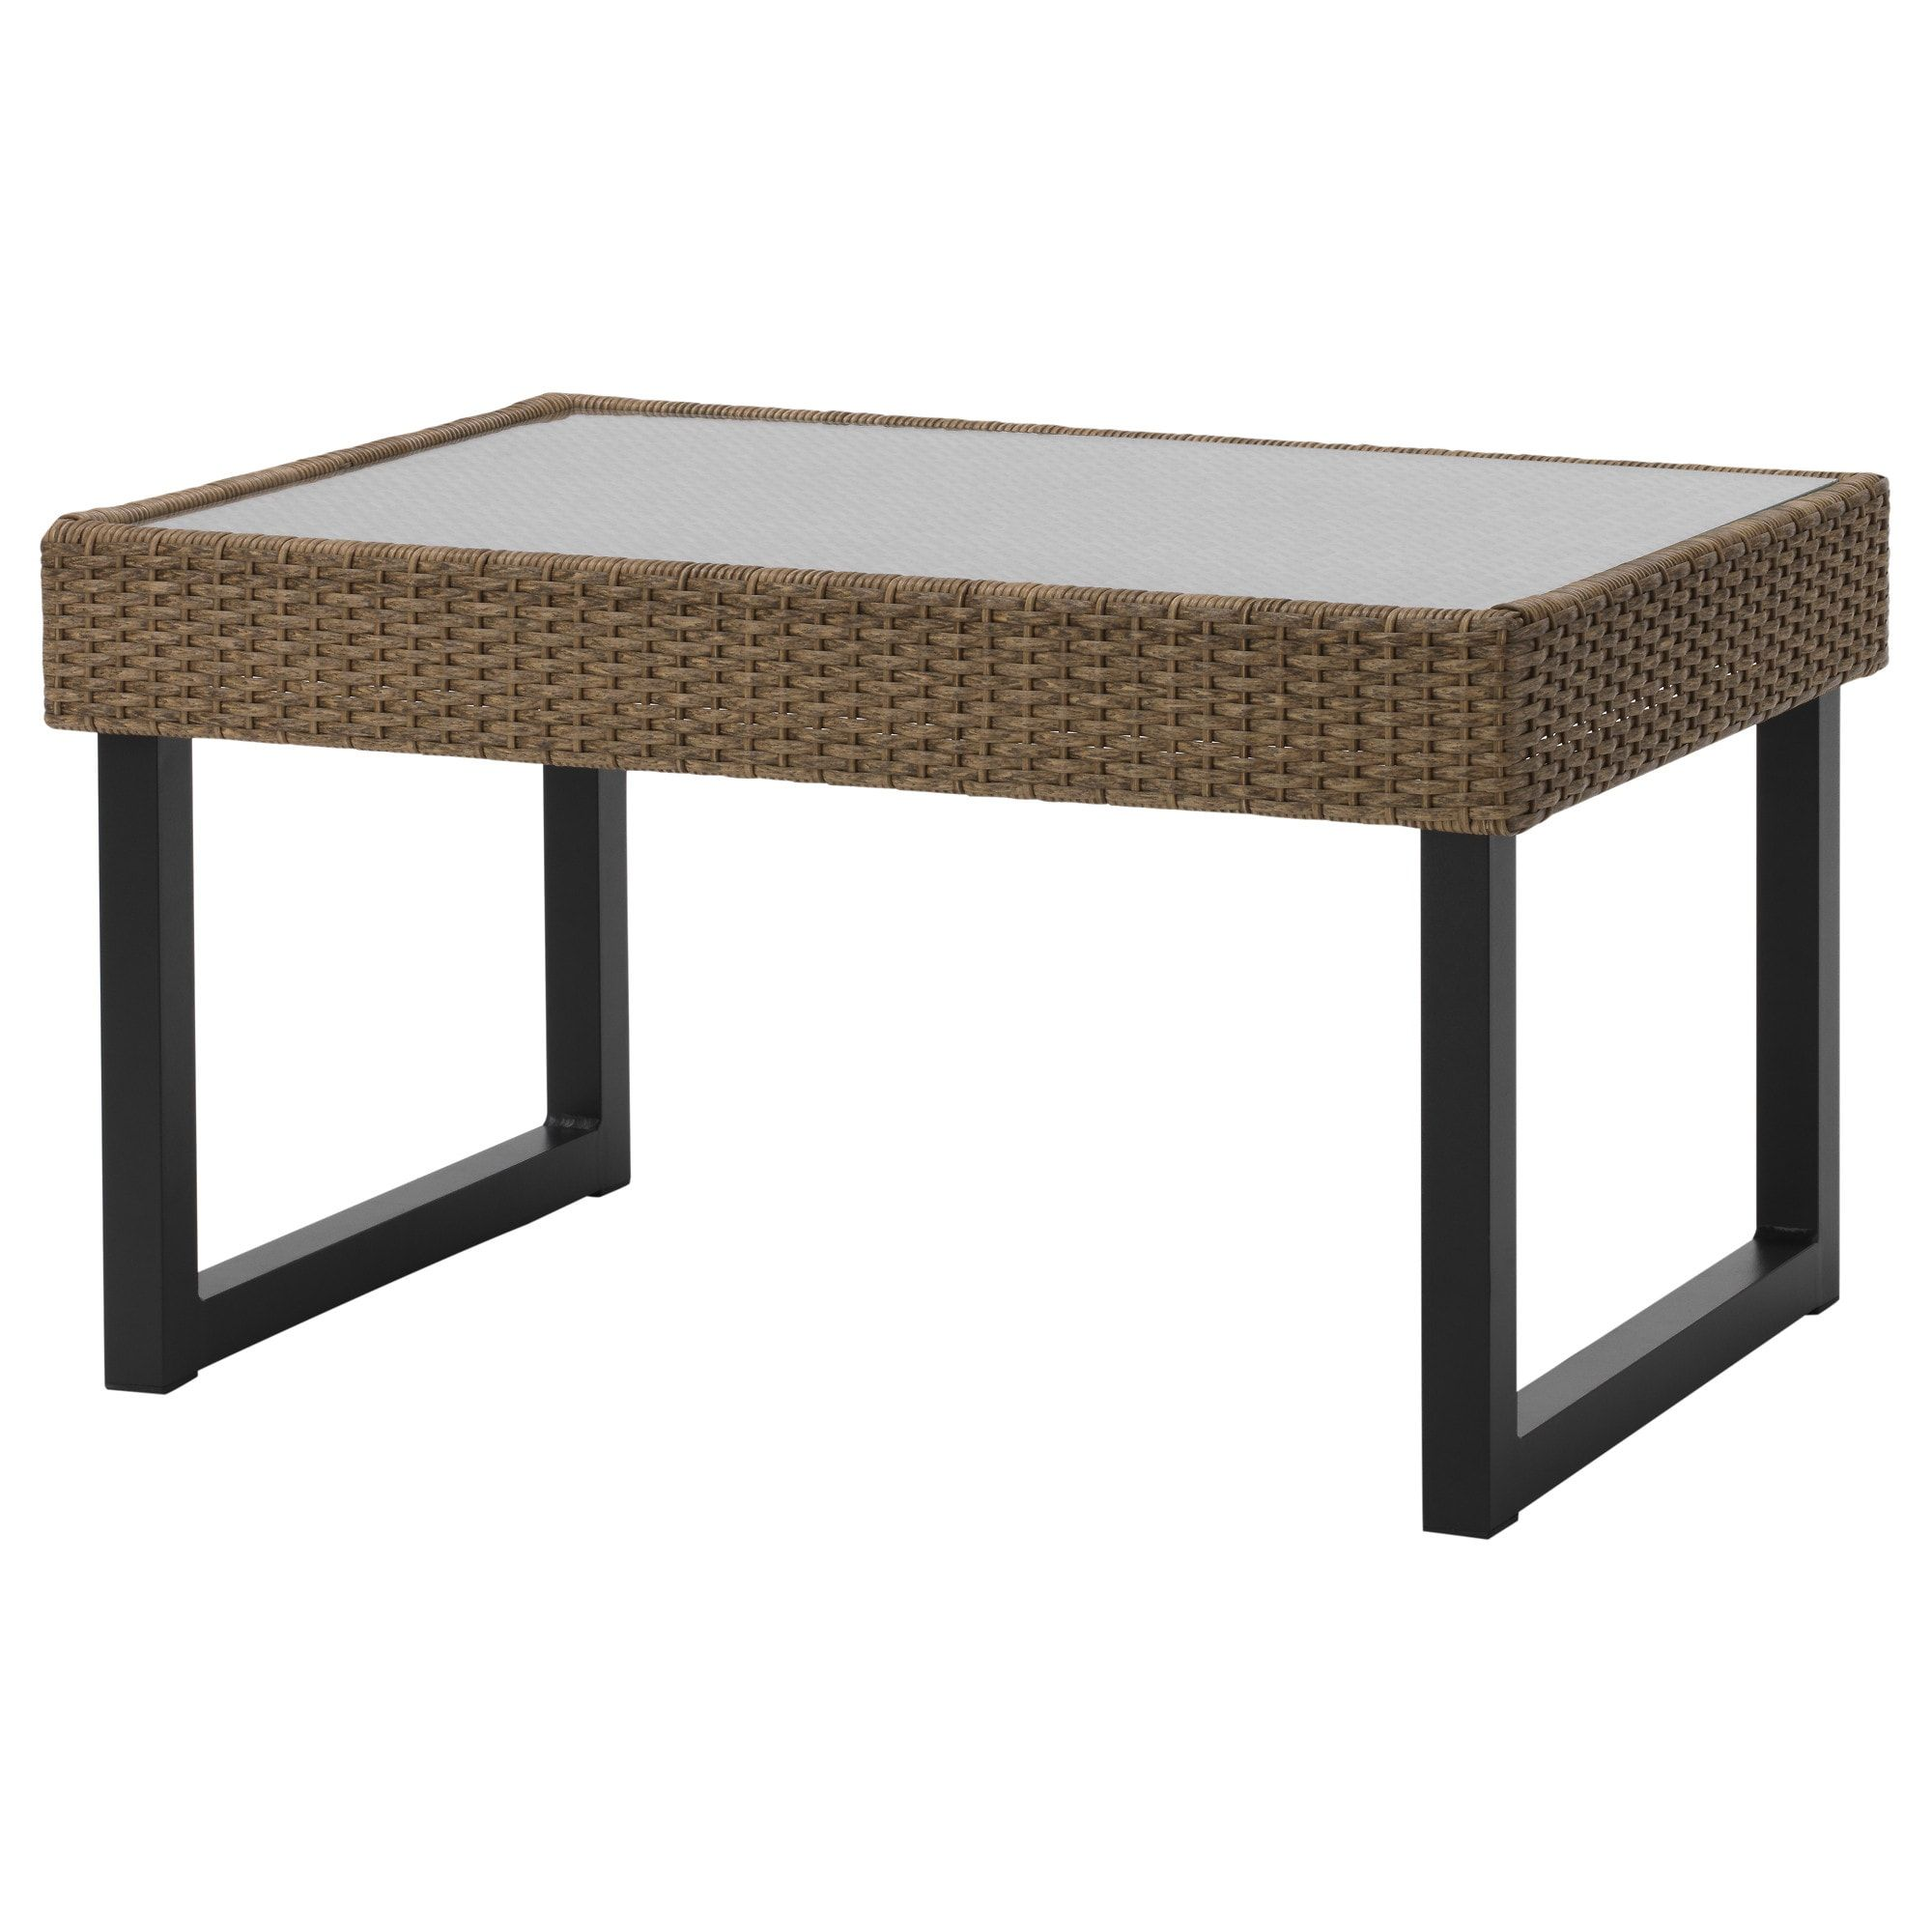 Ikea Solleron Anthracite Brown Coffee Table Outdoor Home